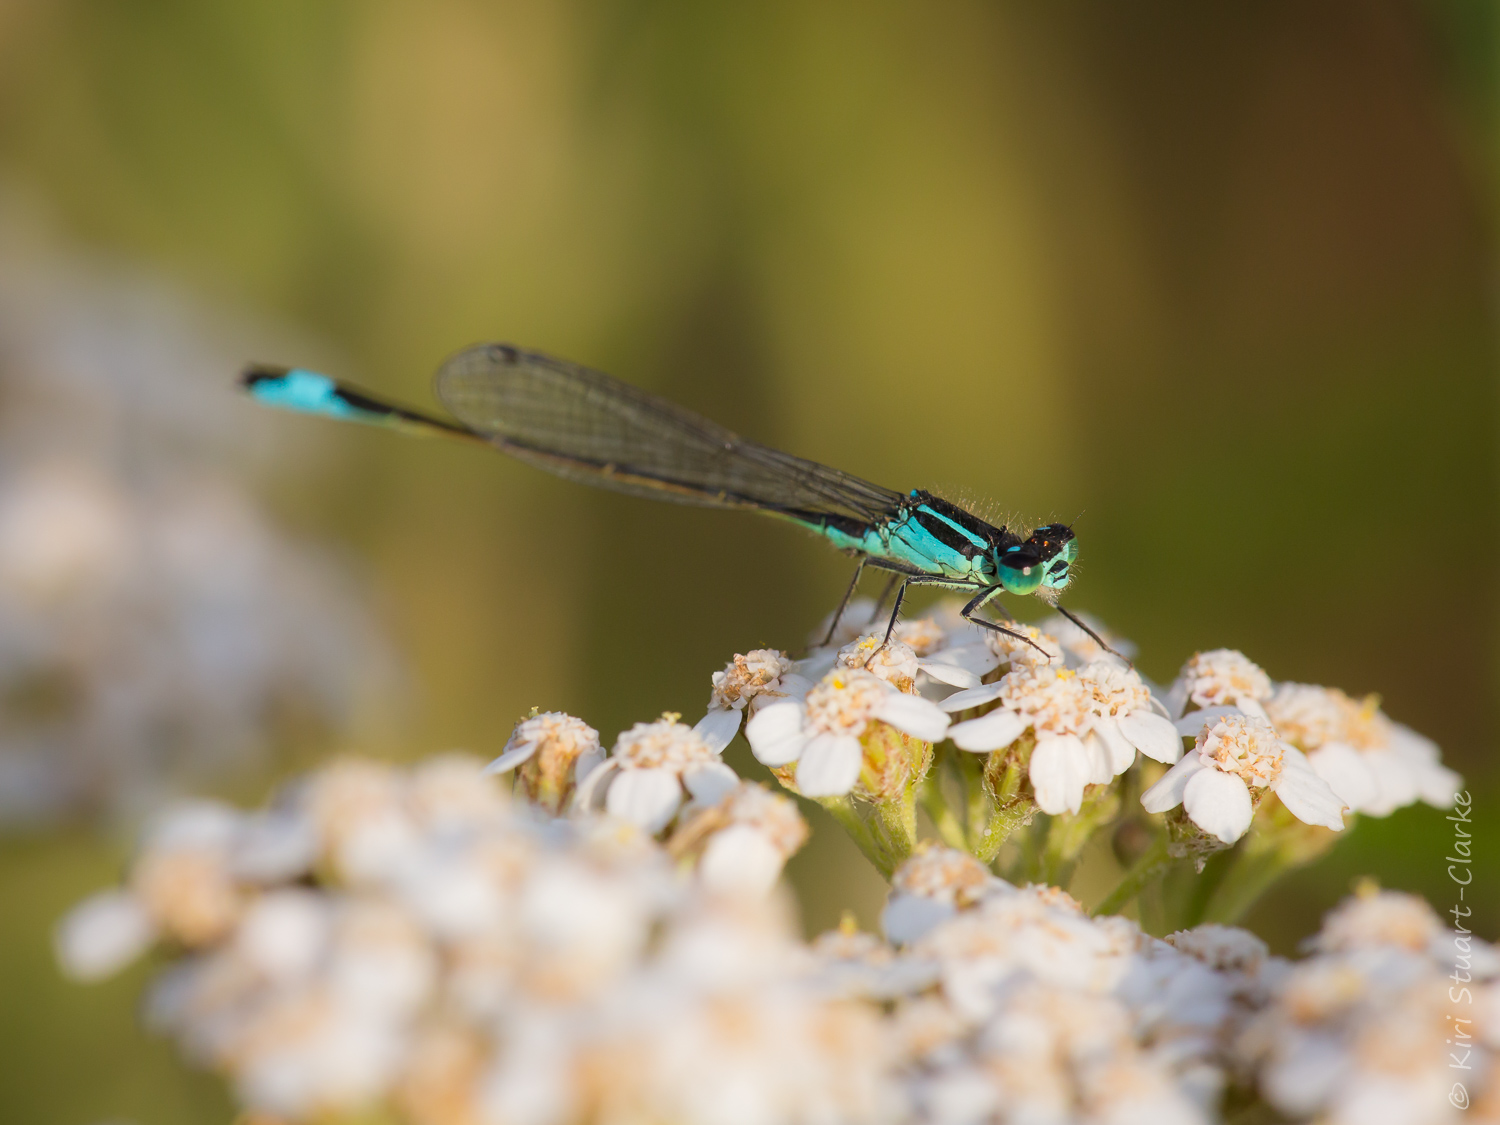 Blue-tailed damselfly on Yarrow flowerhead, July 2015